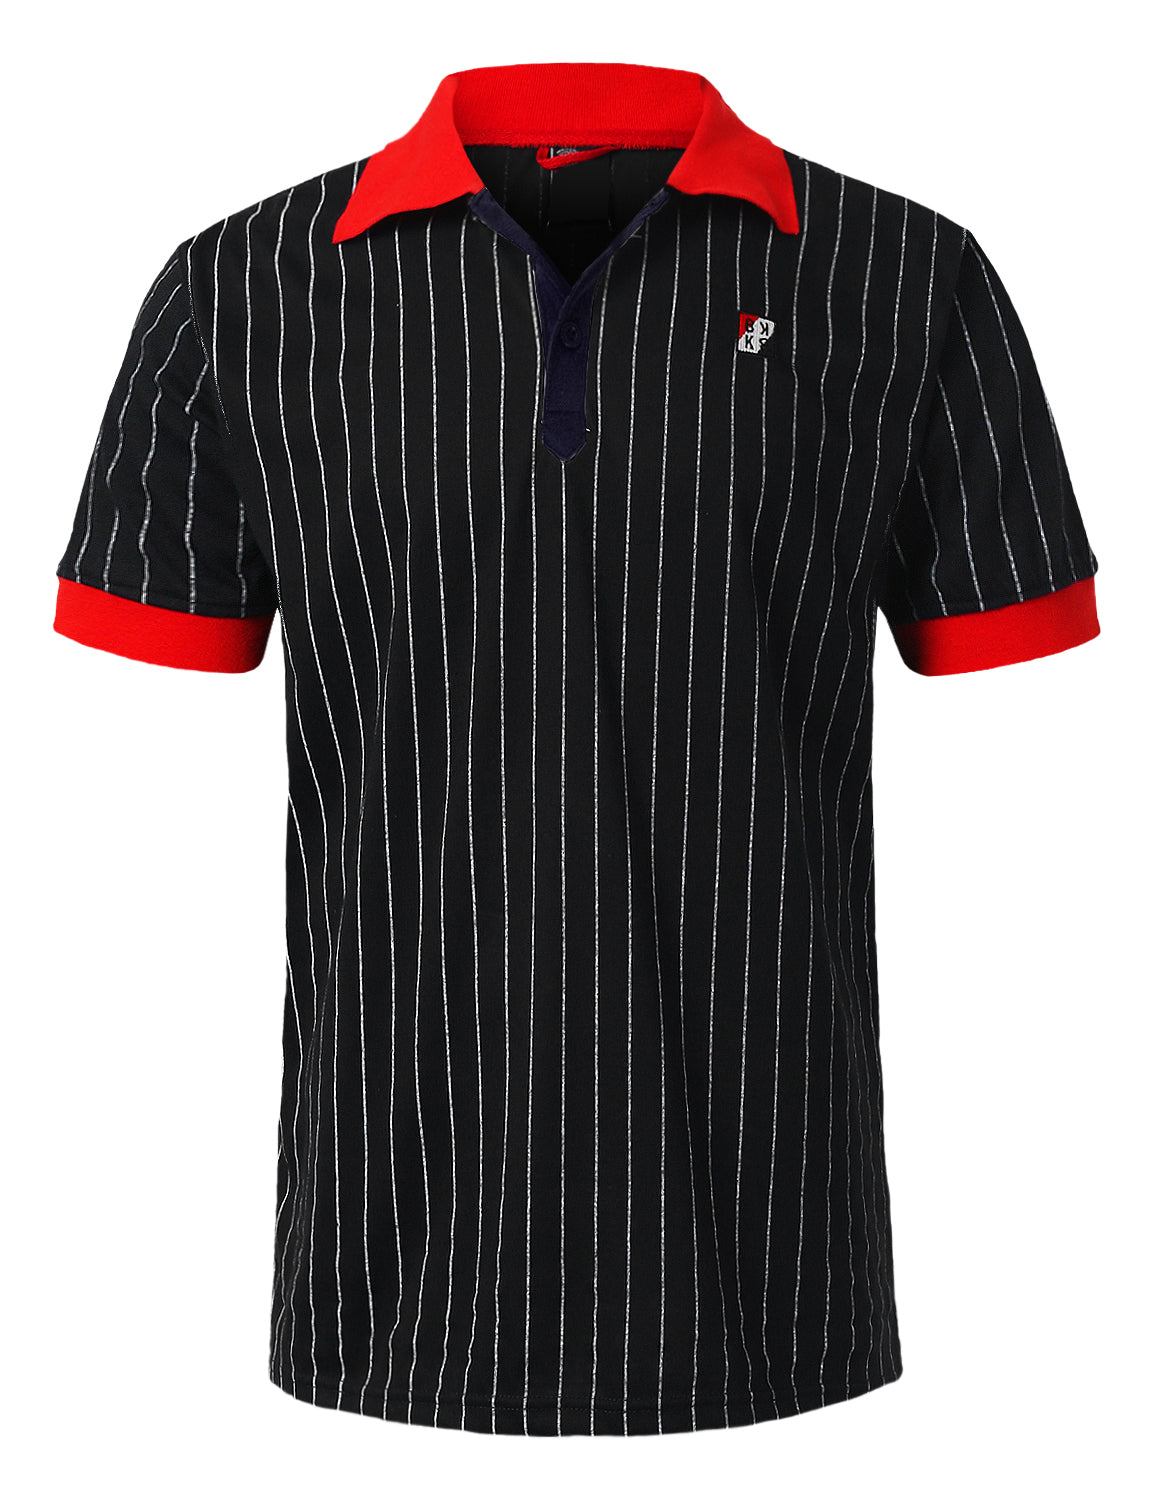 BLACK Classic Striped Polo T-shirt - URBANCREWS